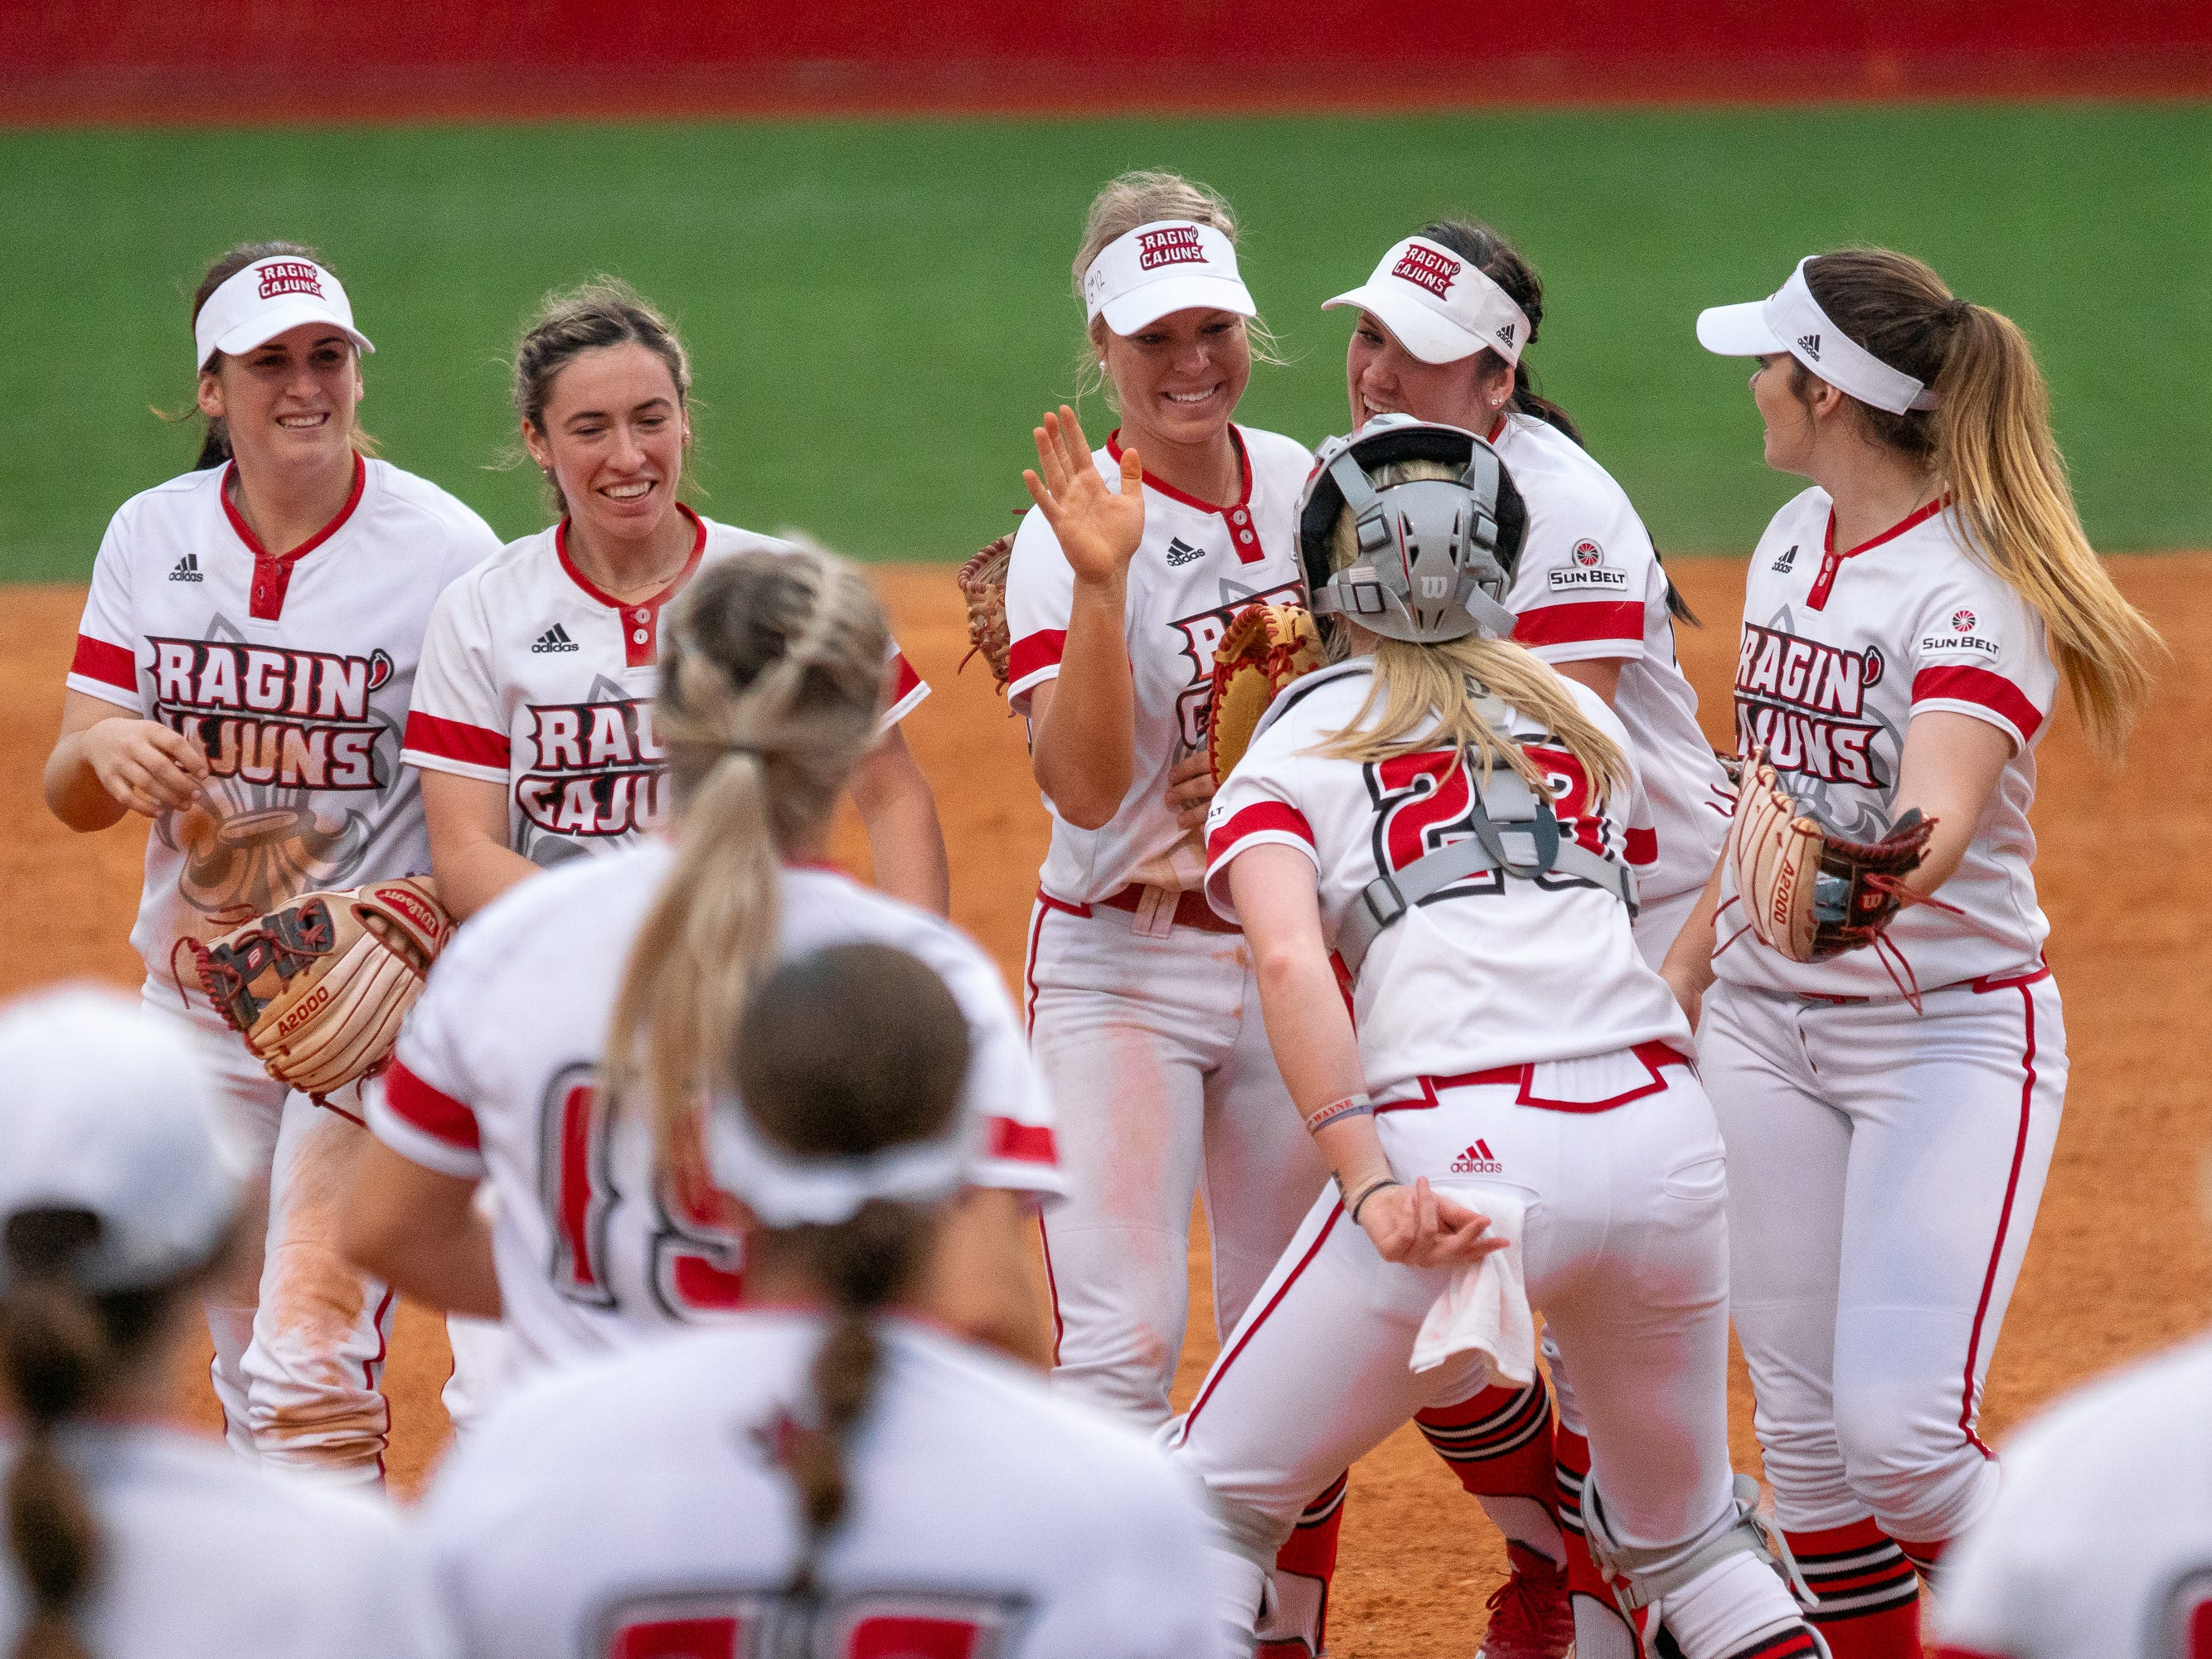 UL's Casidy Chaumont celebrates her catch with her teammates as the Ragin' Cajuns play against the California Golden Bears at Lamson Park on February 11, 2019.